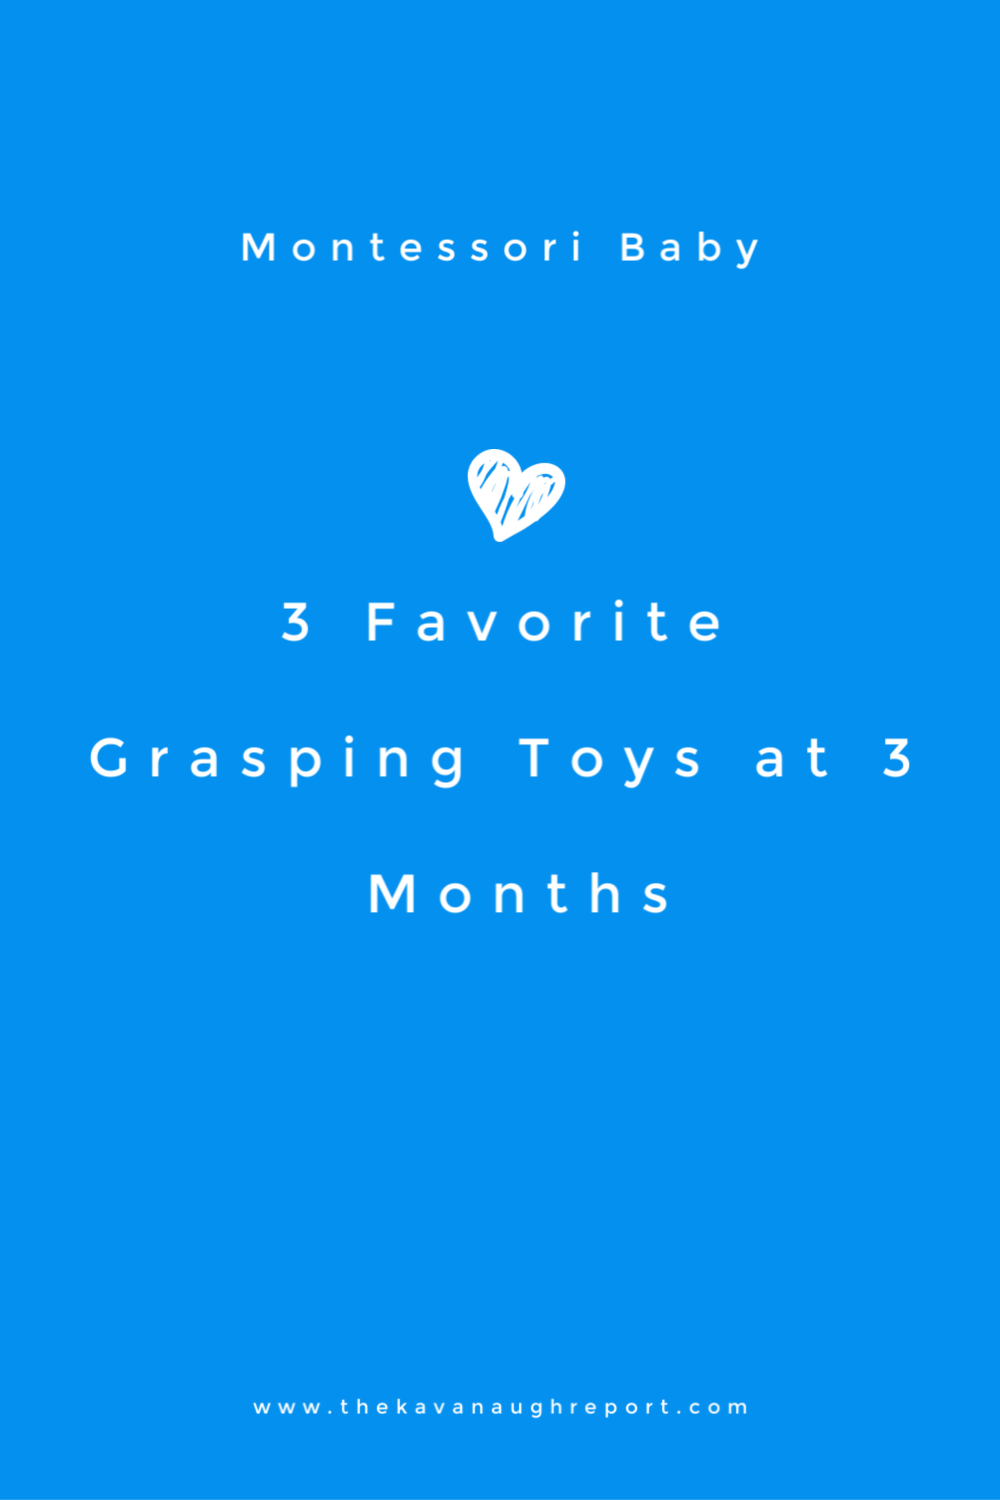 3 Favorite Montessori grasping toys at 3 months old